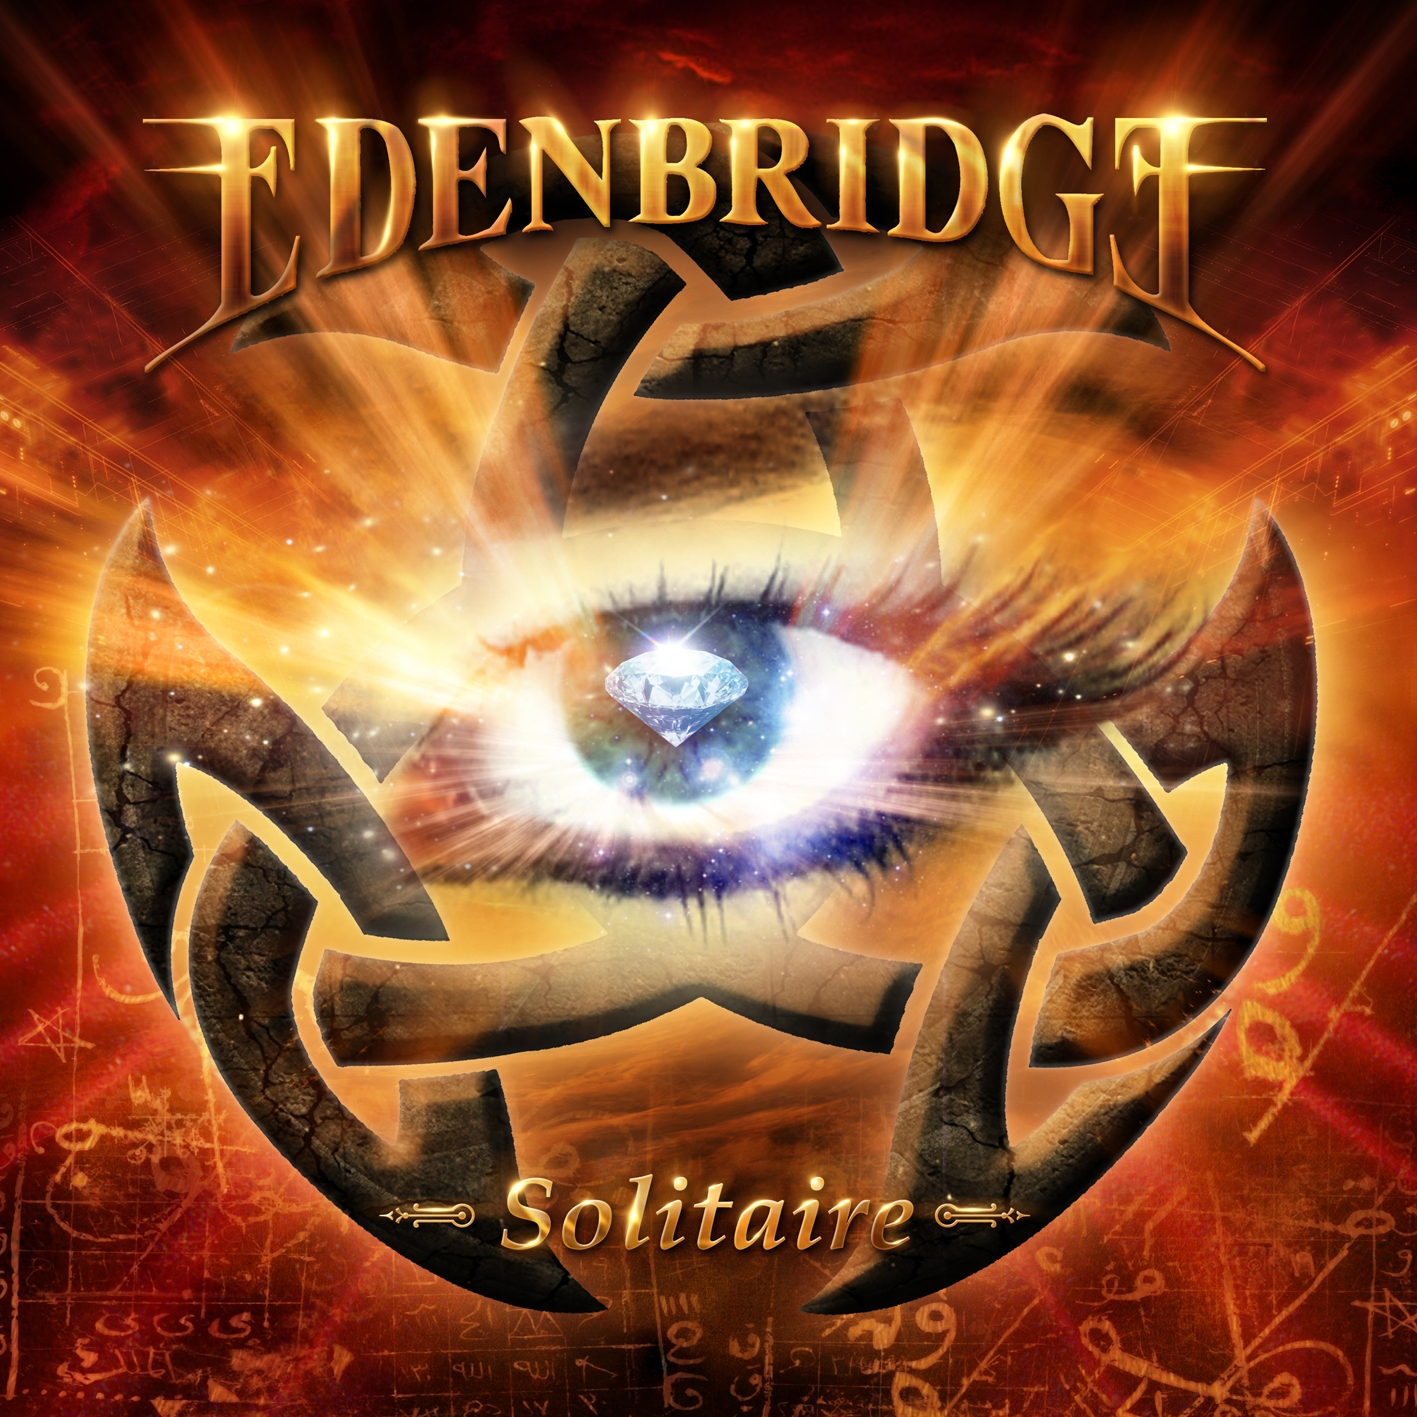 Edenbridge – Solitaire Review